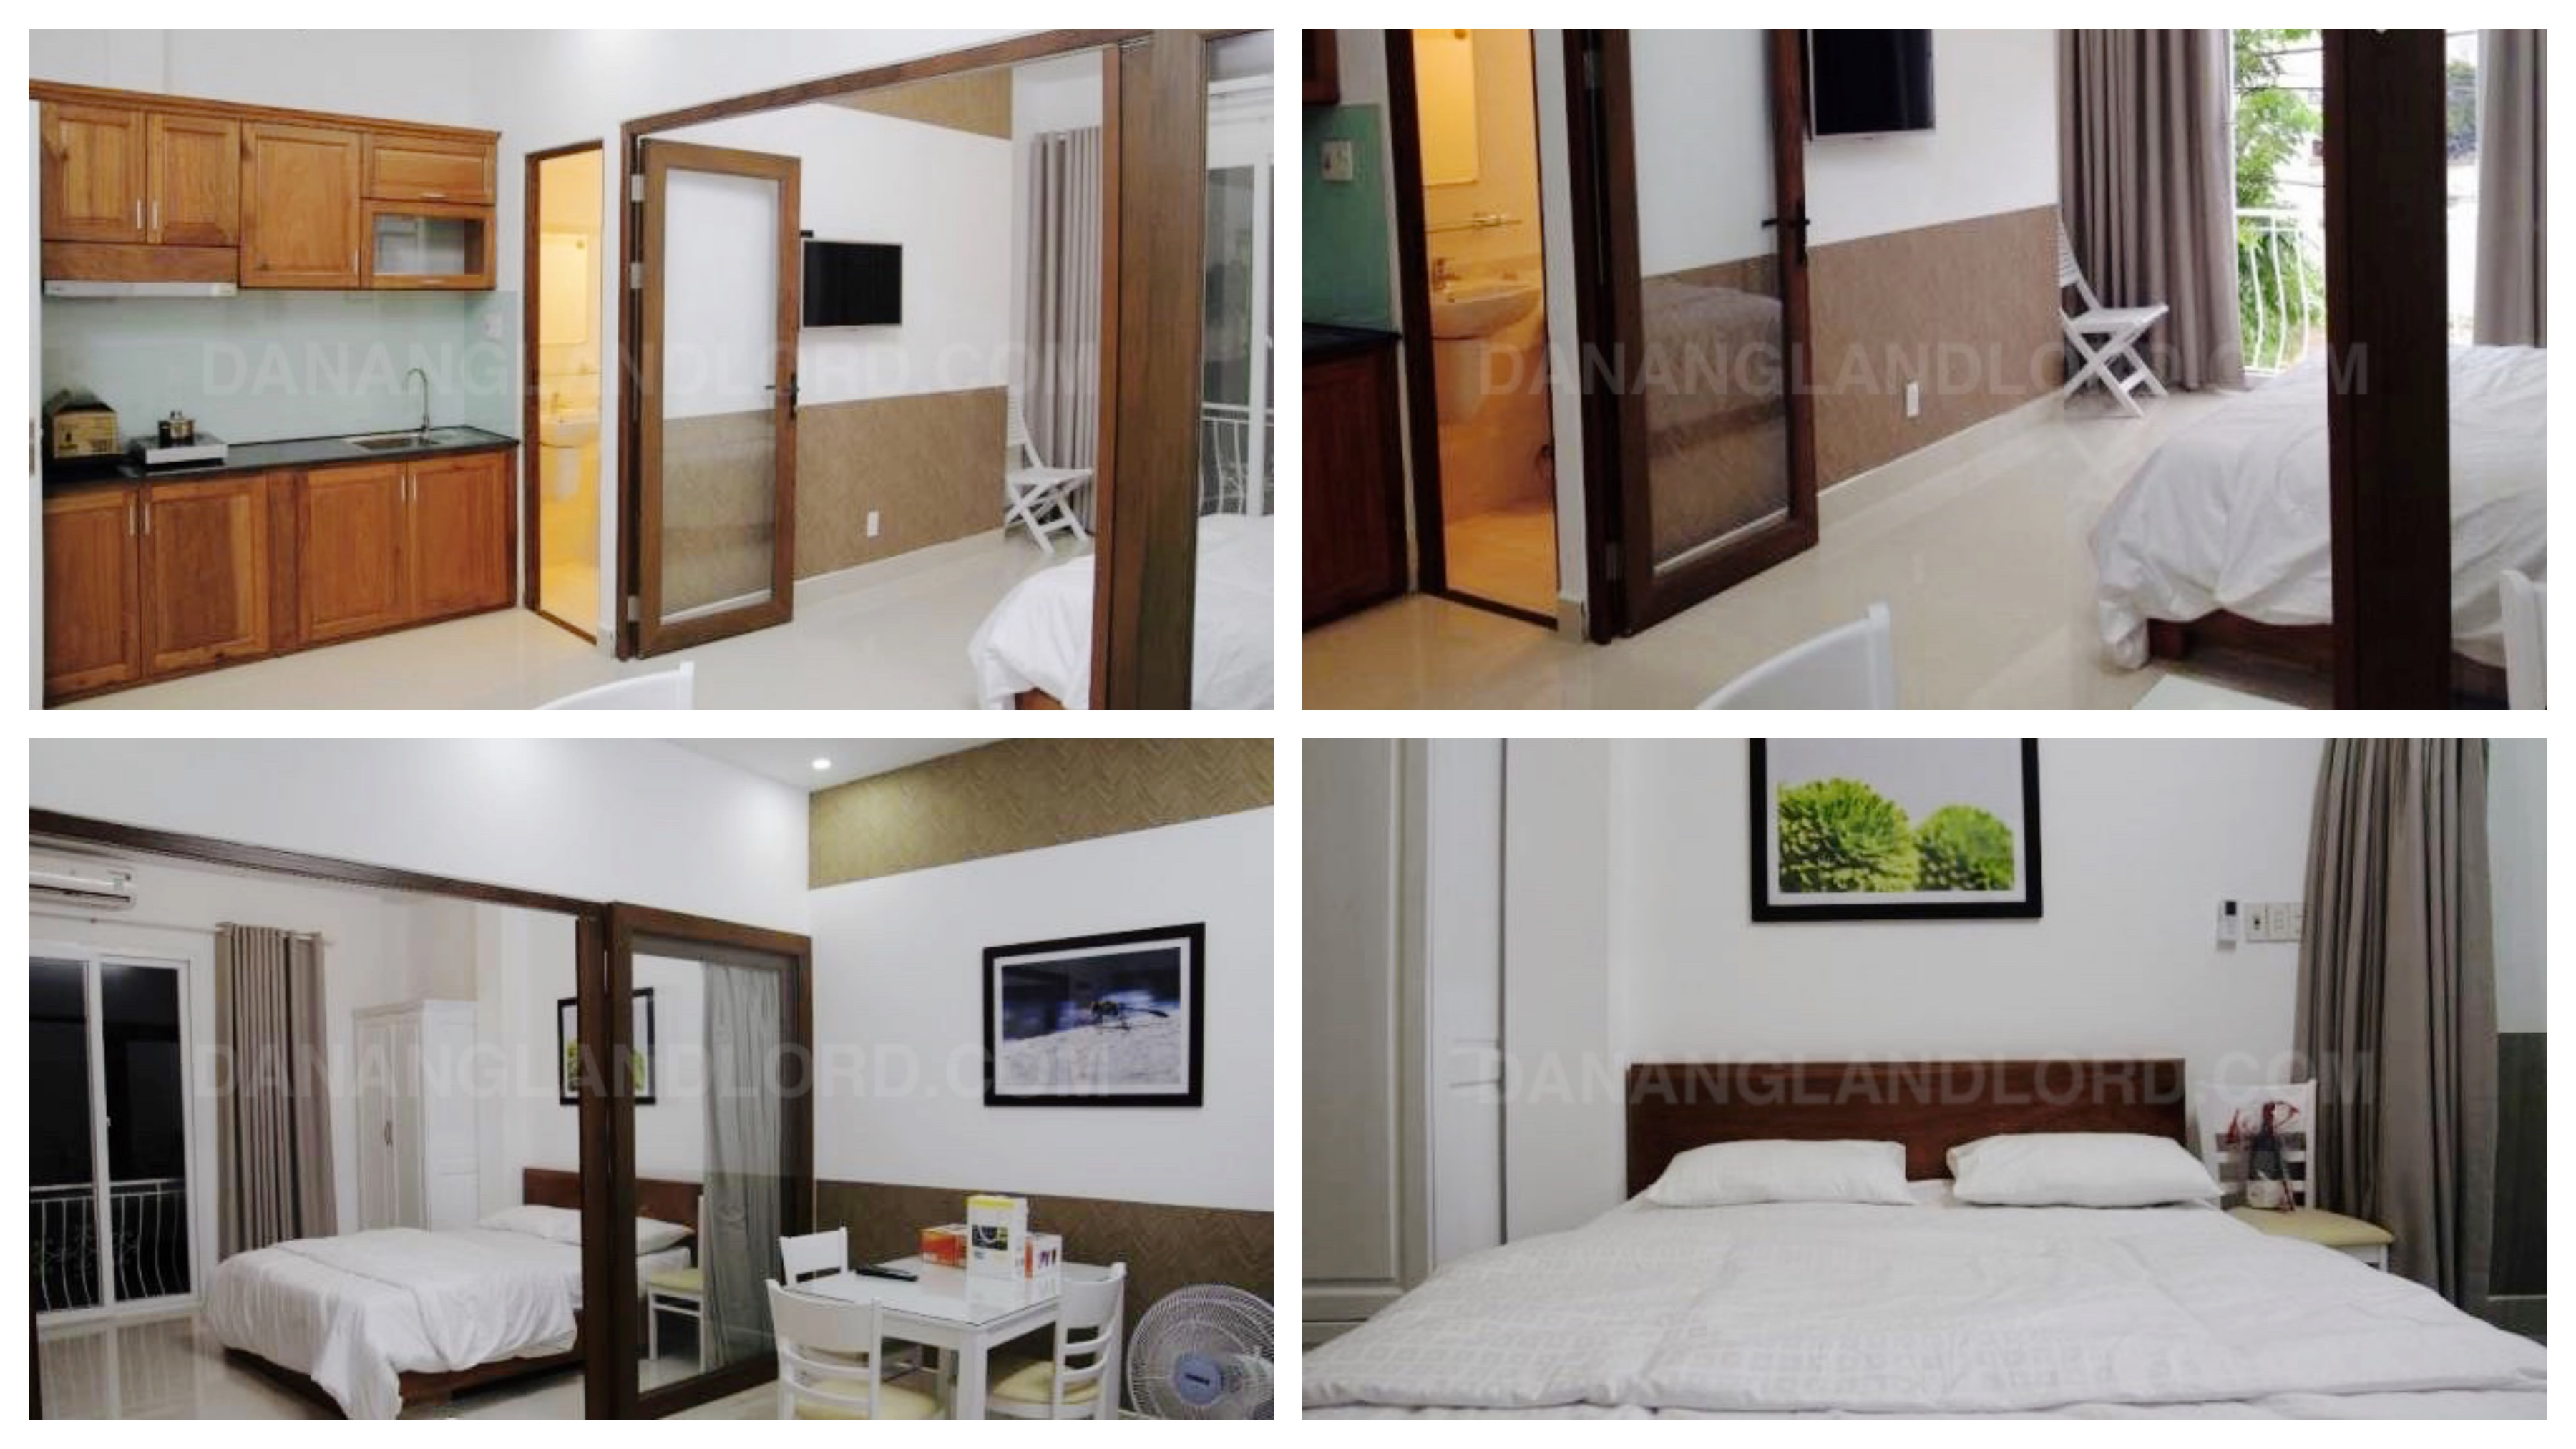 Studio apartment 1 bedroom 5 million in an thuong area for Studio apartment area